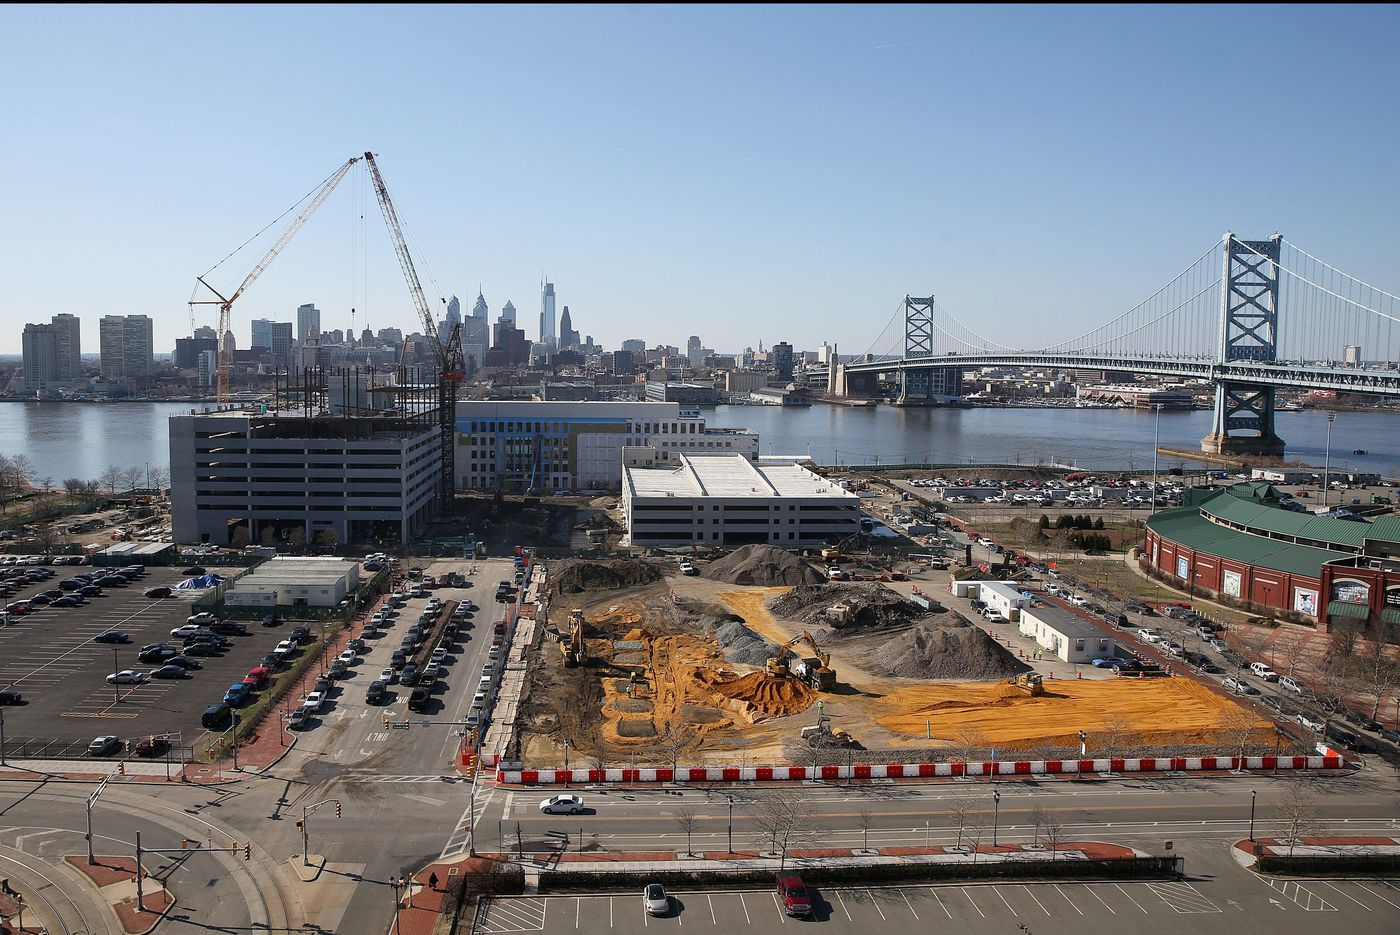 Liberty Property Trust writes down value of Camden waterfront development by $26 million